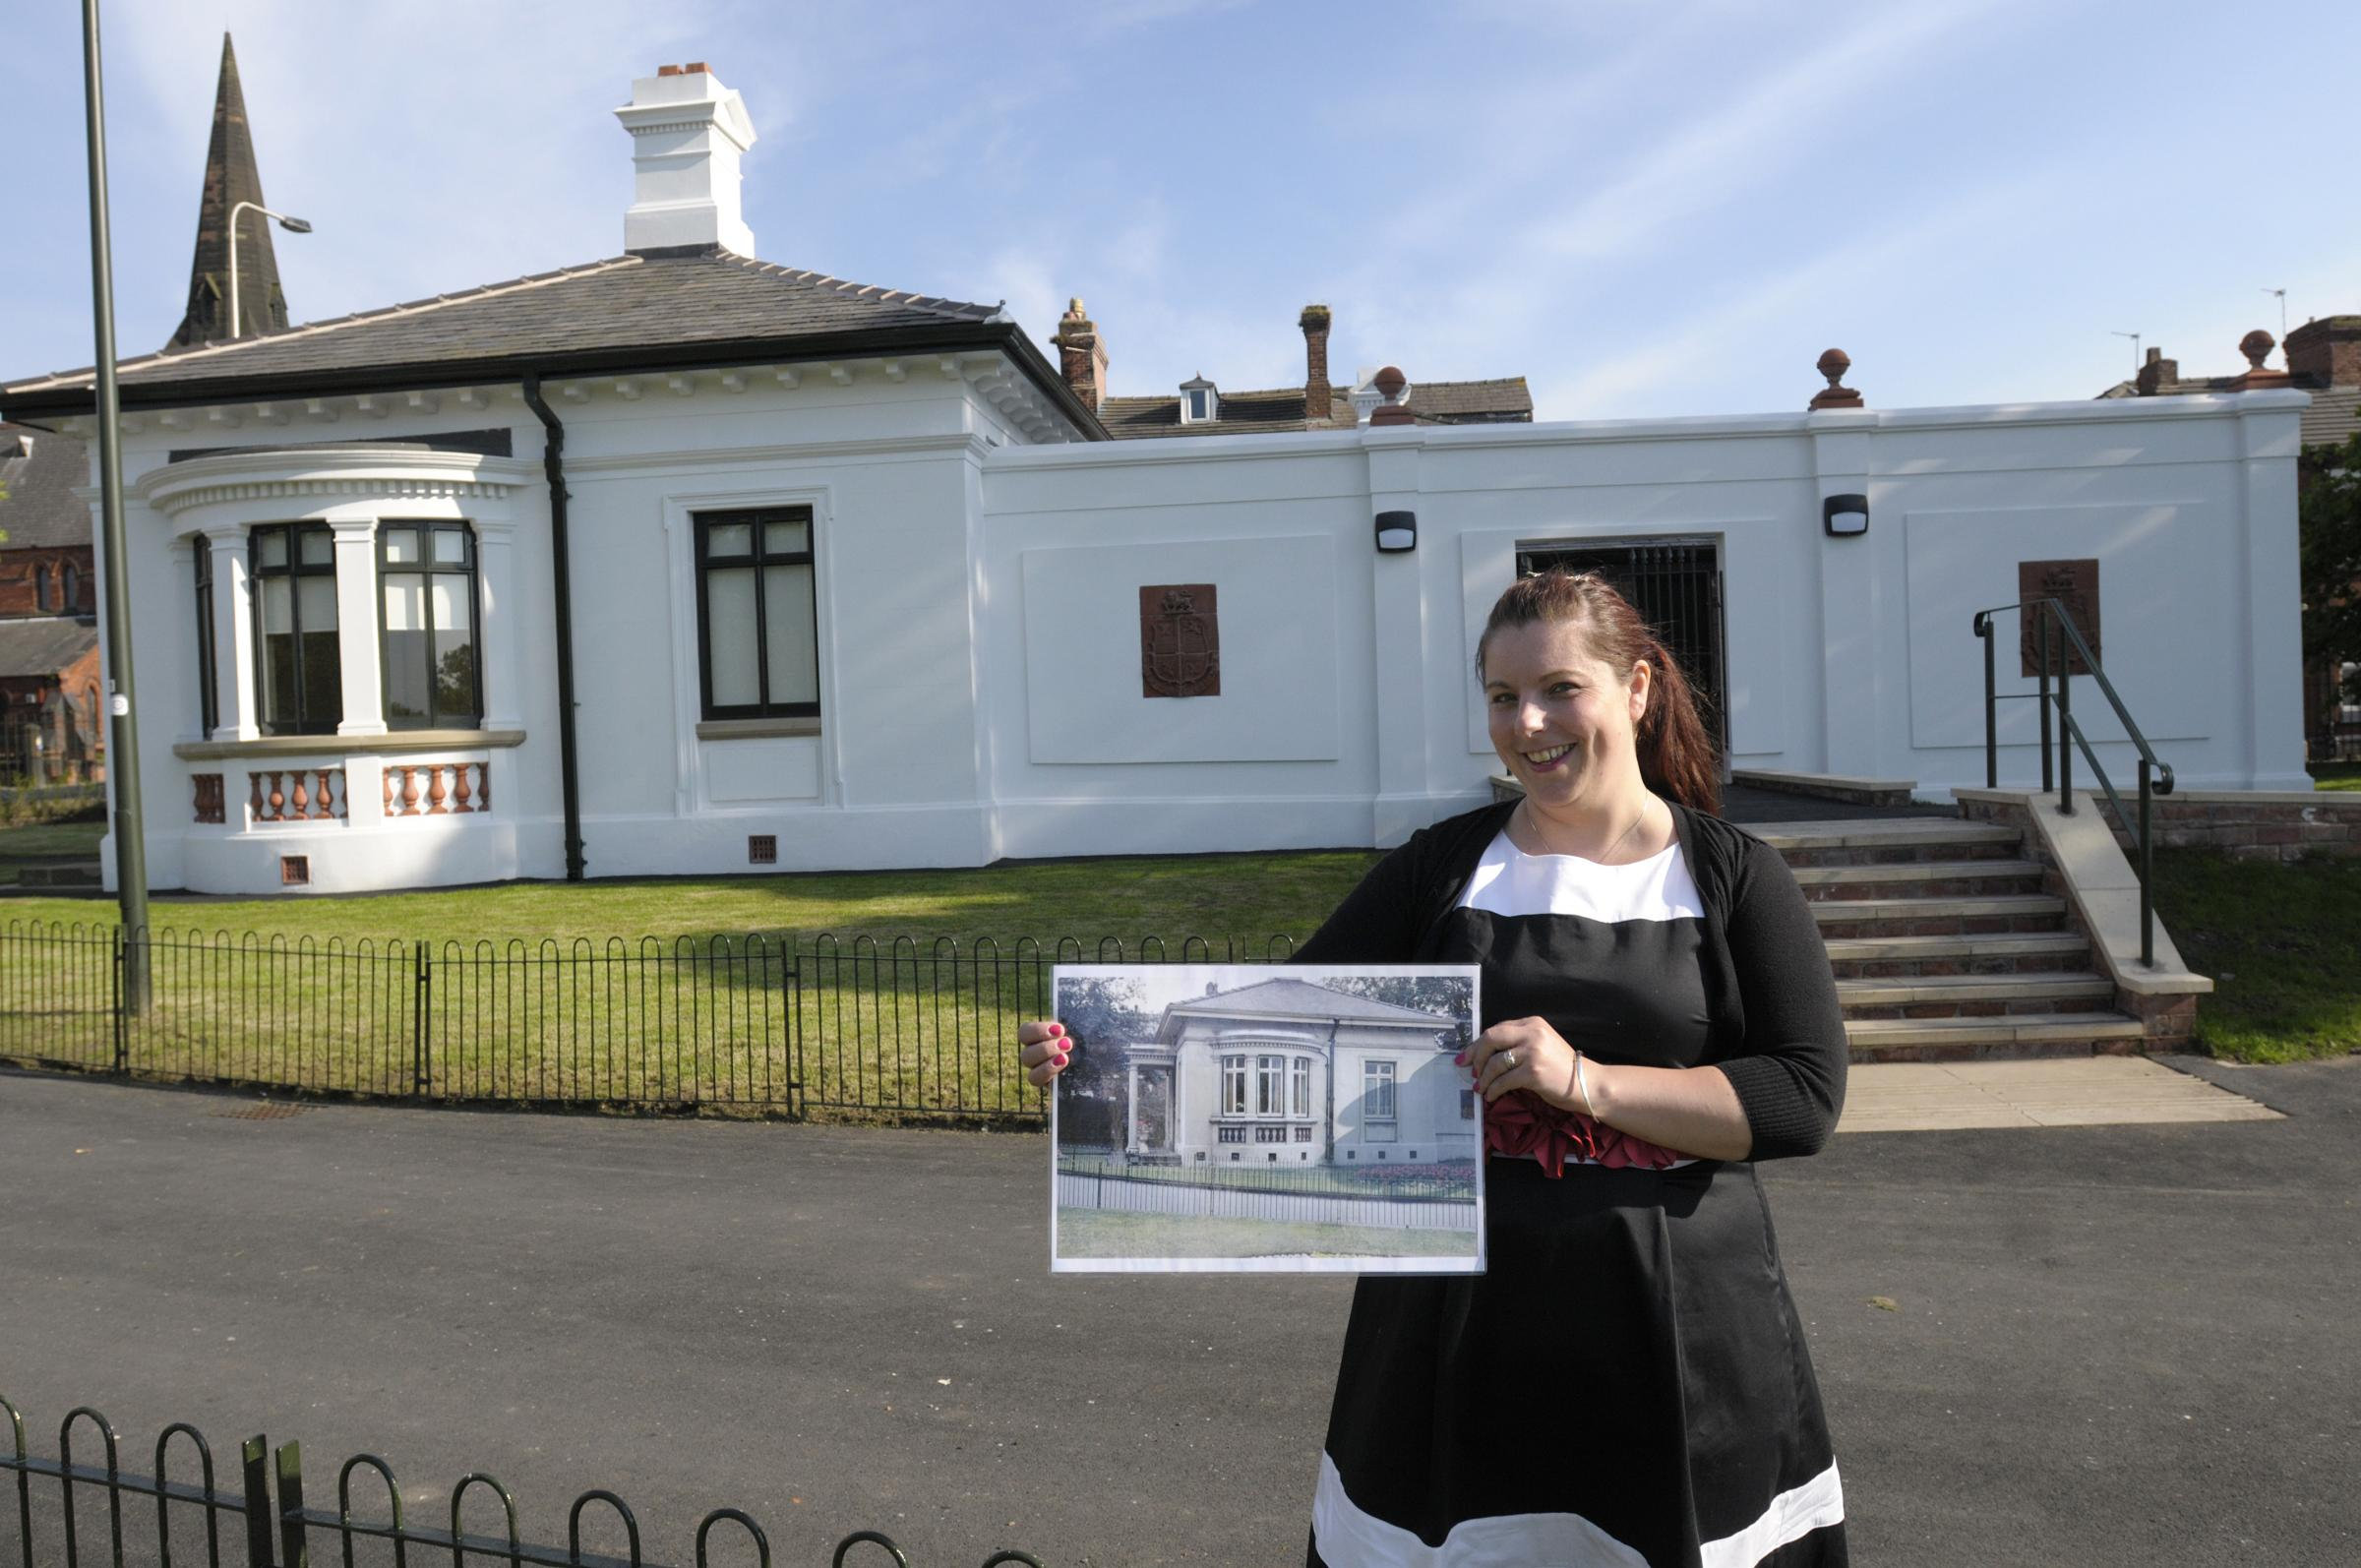 Victoria park enjoying new lease of life as £4m restoration gathers pace